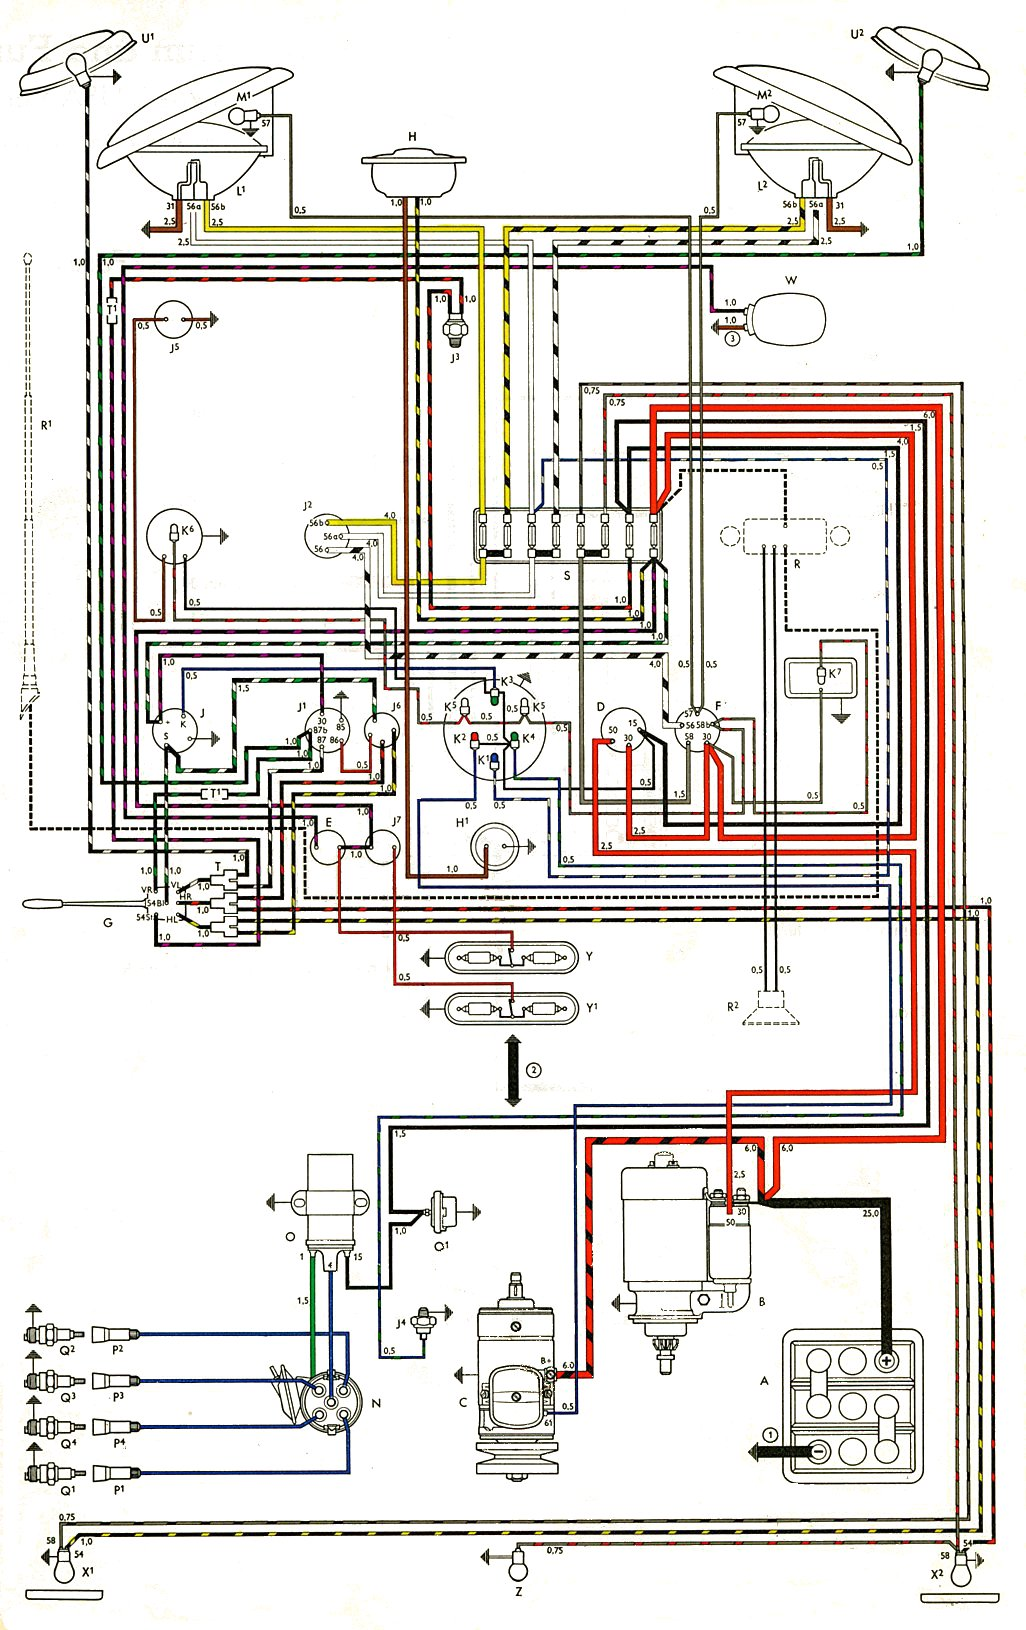 bus_63_USA thesamba com type 2 wiring diagrams vw wiring diagrams at cita.asia